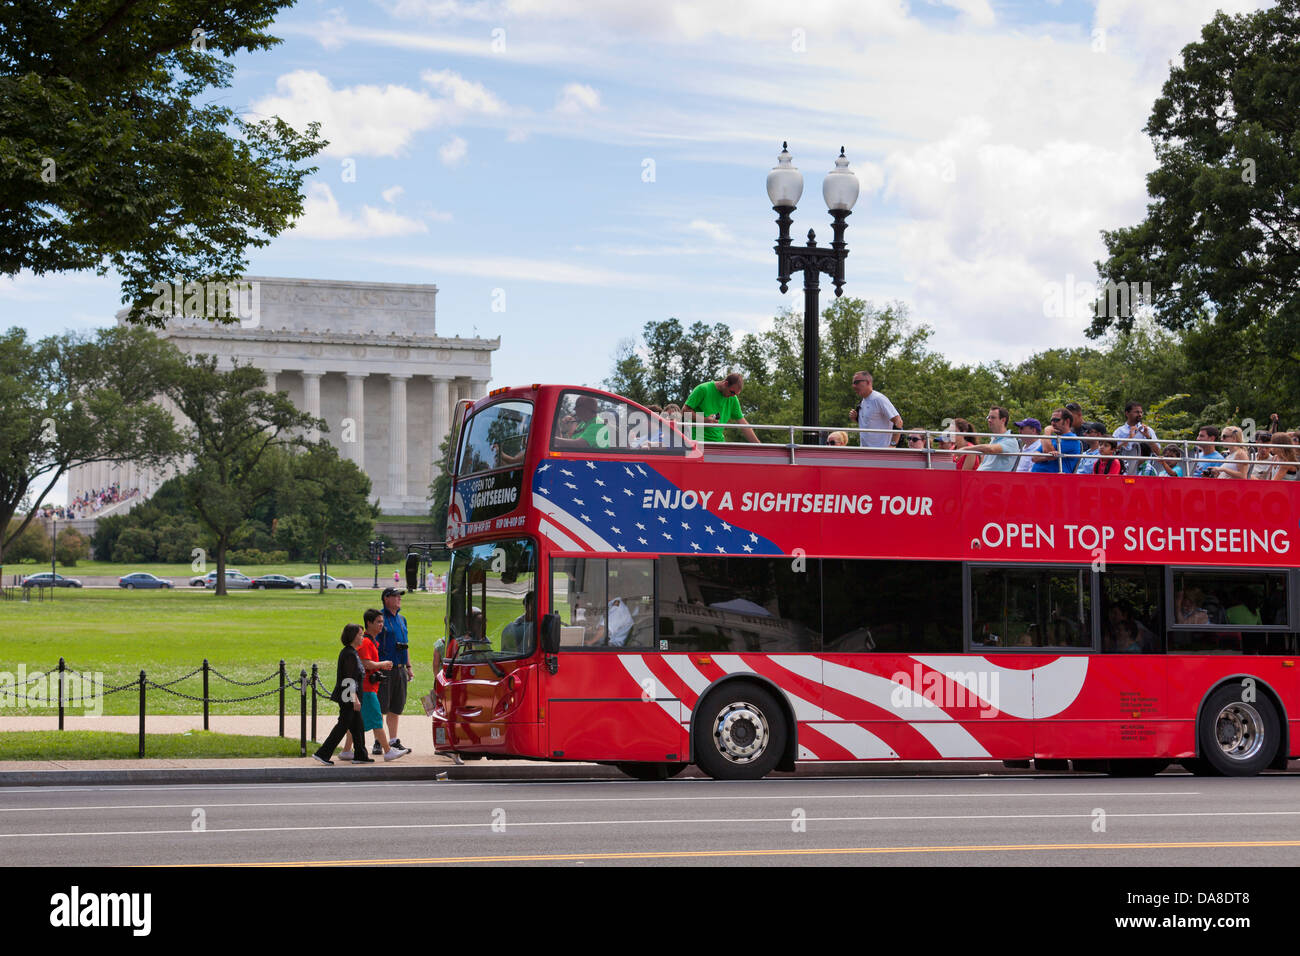 Open Top Tour Bus Washington DC USA Stock Photo Royalty Free - Bus tours usa